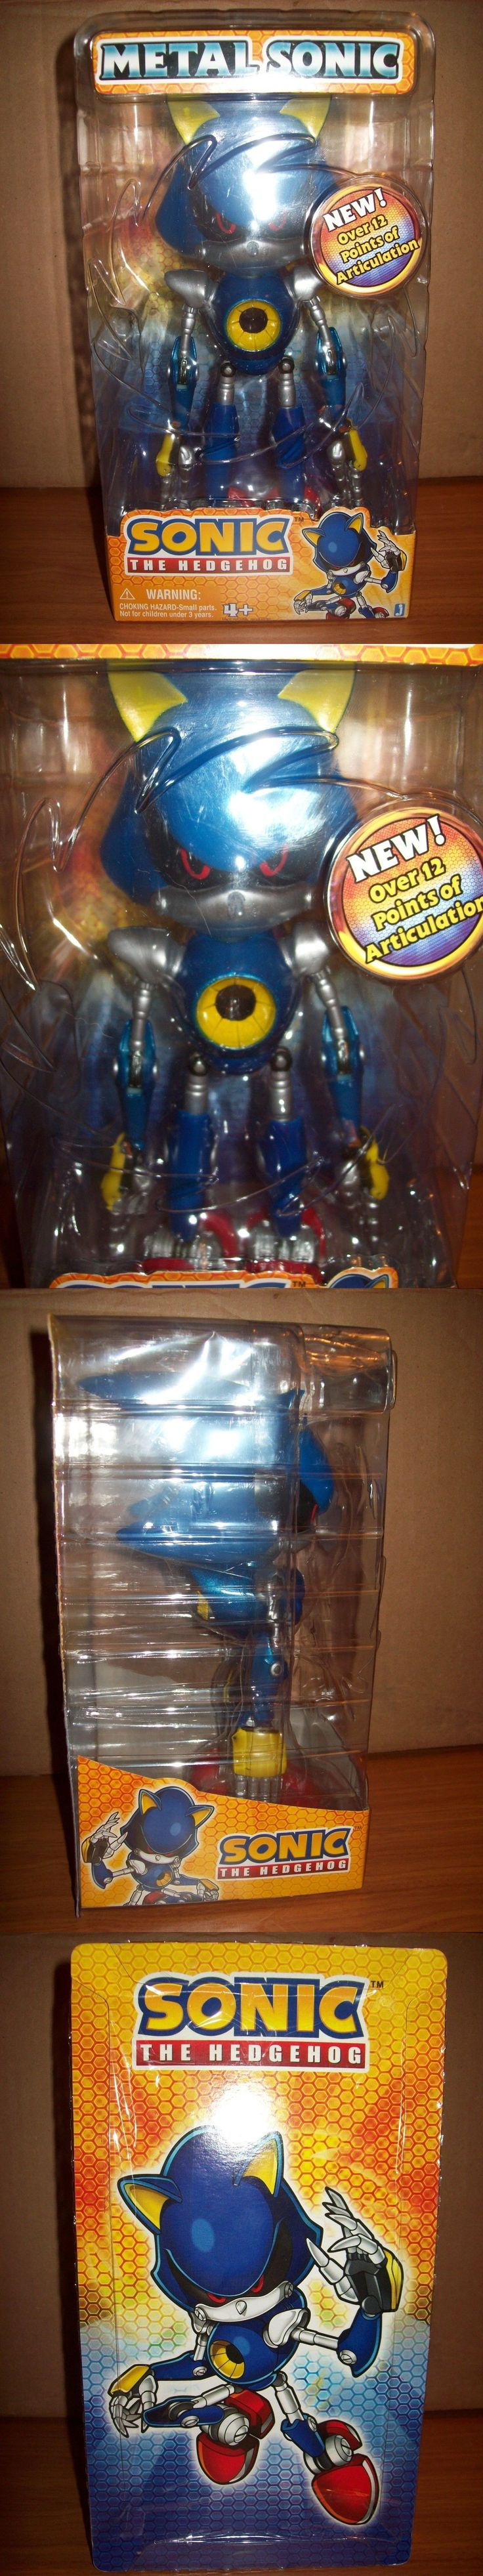 Sonic 158768: Metal Sonic The Hedgehog 10 Jazwares Toy Figure -> BUY IT NOW ONLY: $159.99 on eBay!